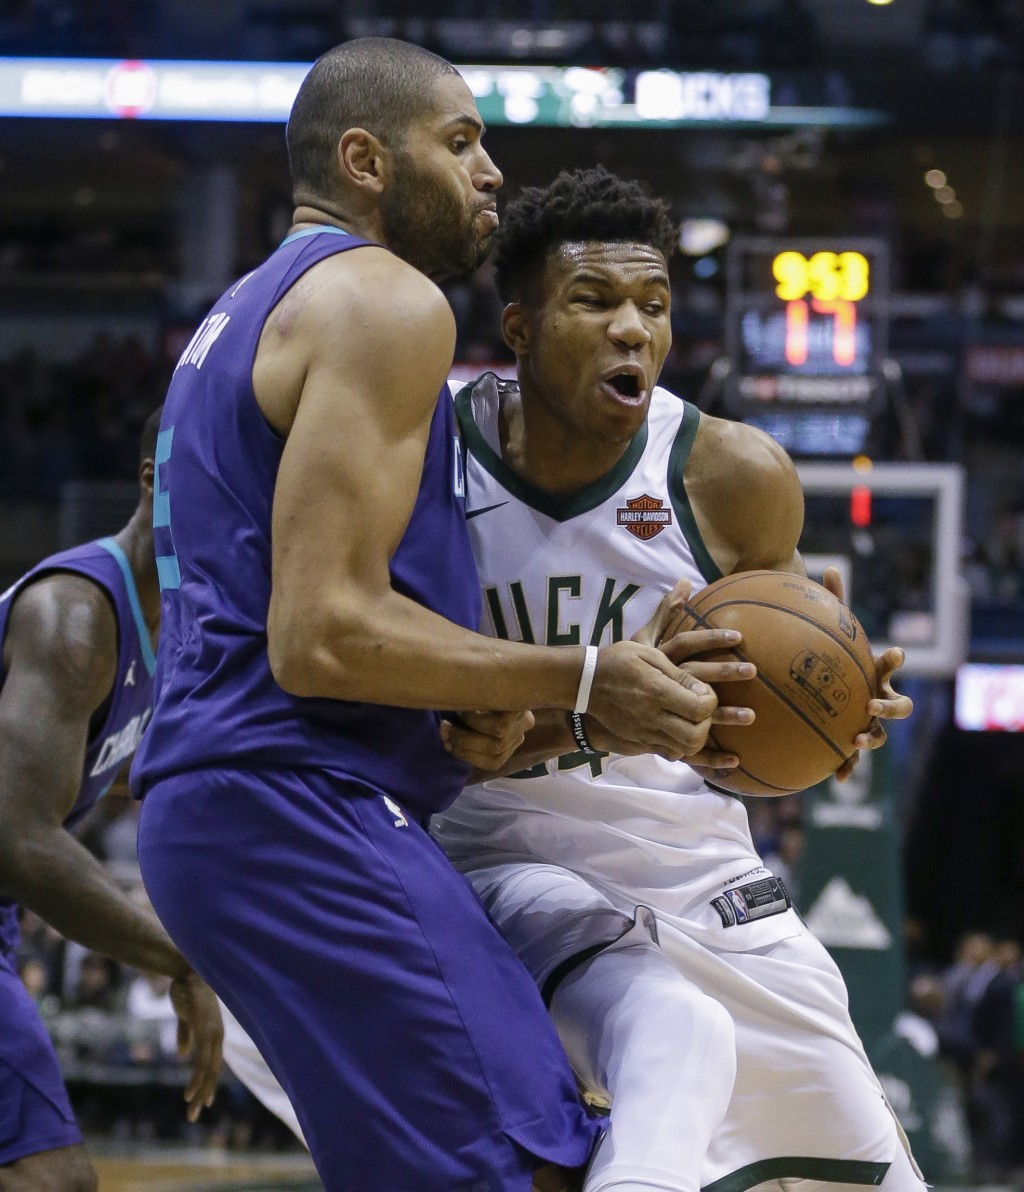 Milwaukee Bucks' Giannis Antetokounmpo runs into Charlotte Hornets' Nicolas Batum, left, while driving to the basket during the second half of an NBA ...